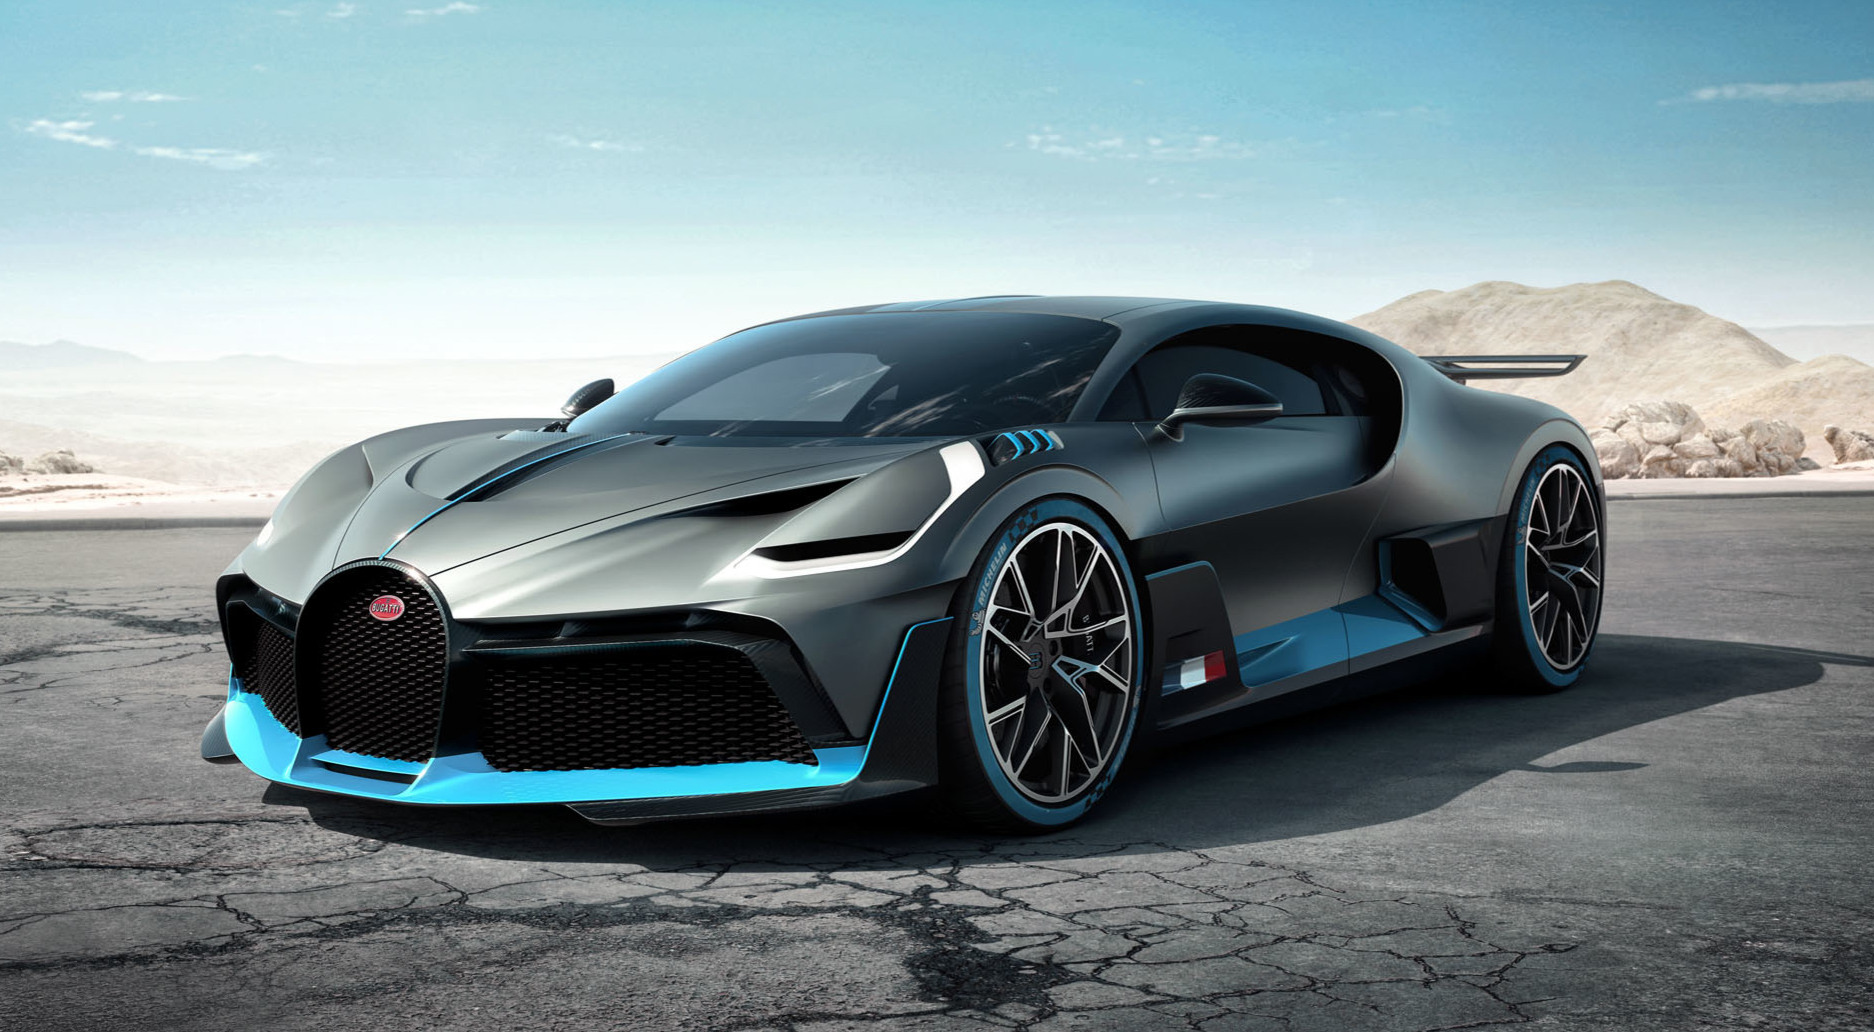 Car Transport Reviews >> Bugatti Divo - Here are 7 astonishing facts about the $6 ...